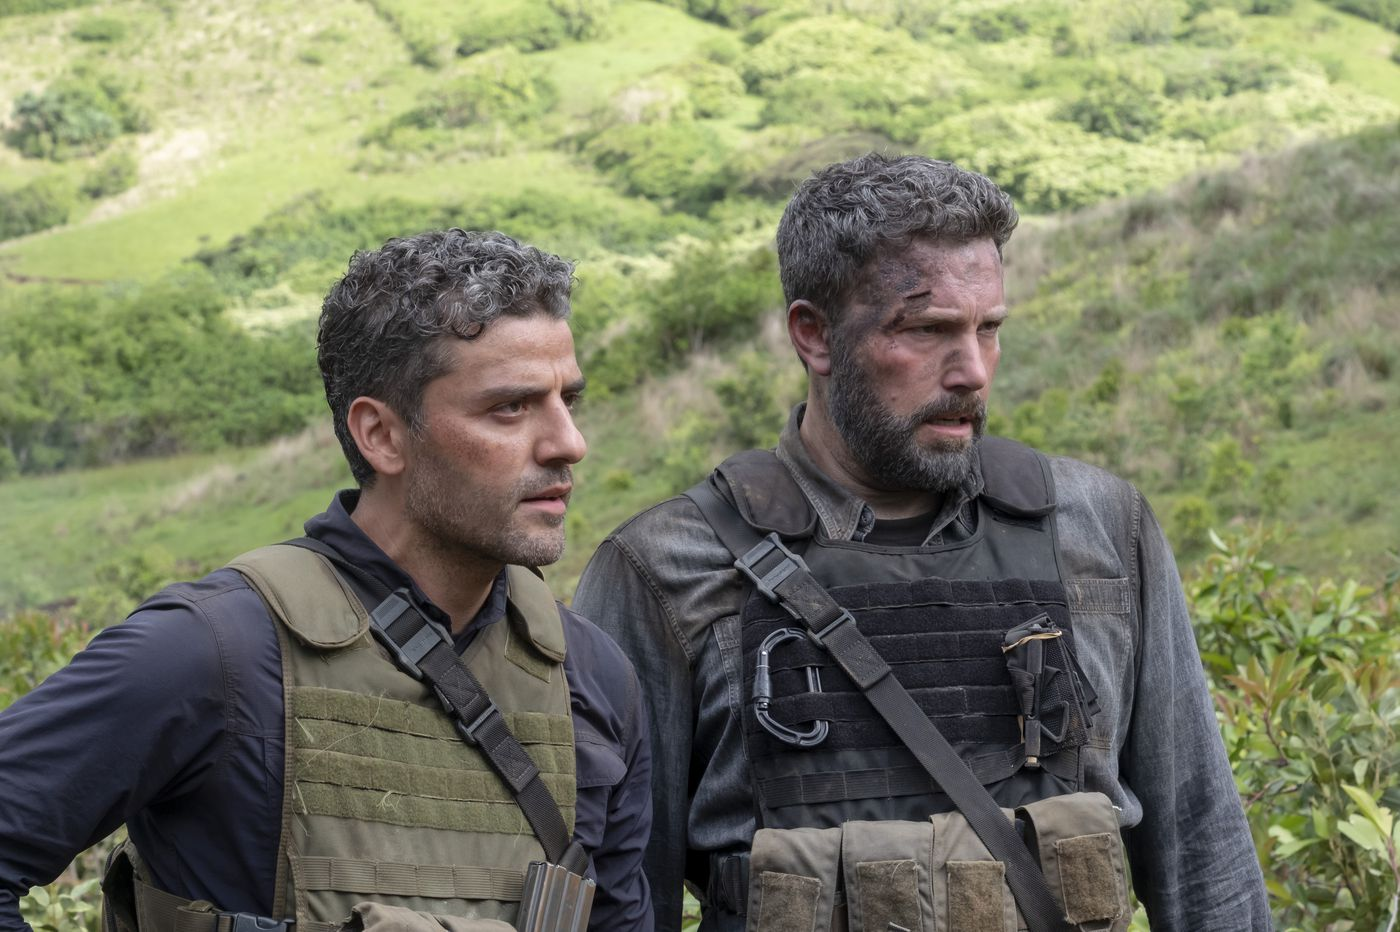 'Triple Frontier': Ben Affleck and Oscar Isaac search for blood and treasure in an era of privatized war | Movie review